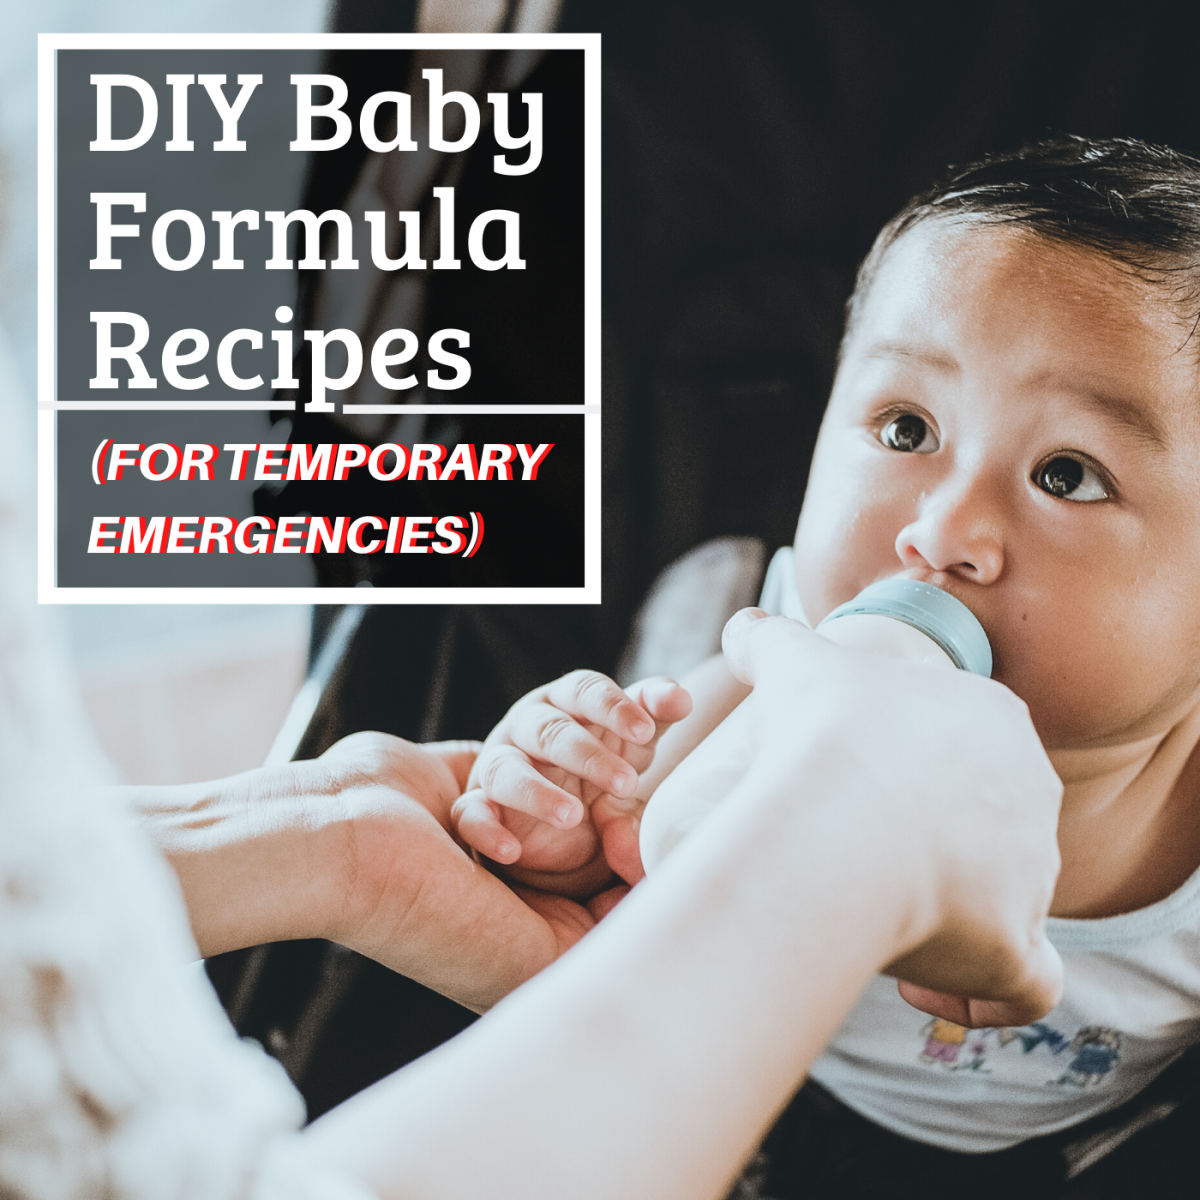 If you're temporarily stuck without formula and unable to get more, you can use one of these emergency recipes to safely feed your infant. These substitutes should not be used in the long term.